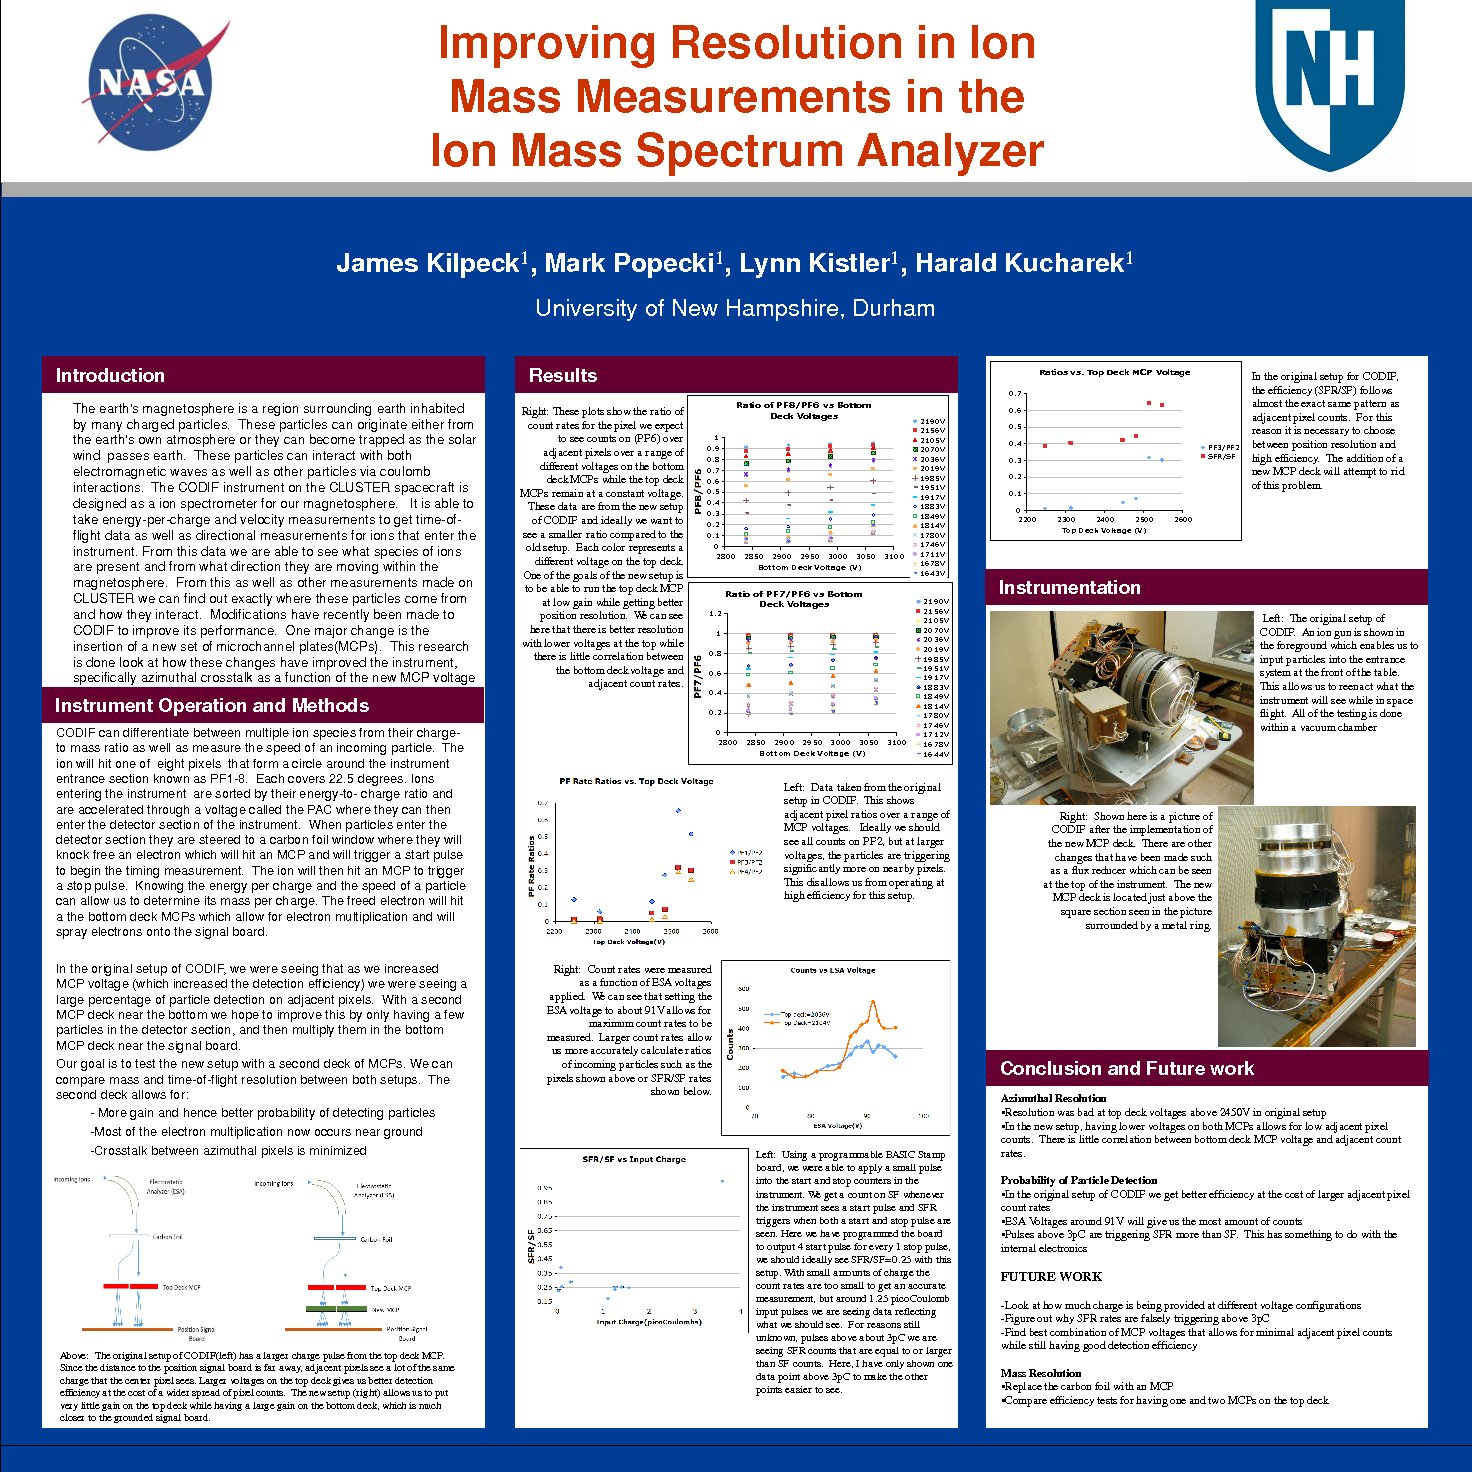 Improving Ion Mass Measurements In The Ion Mass Spectrum Analyzer by jbkilpeck